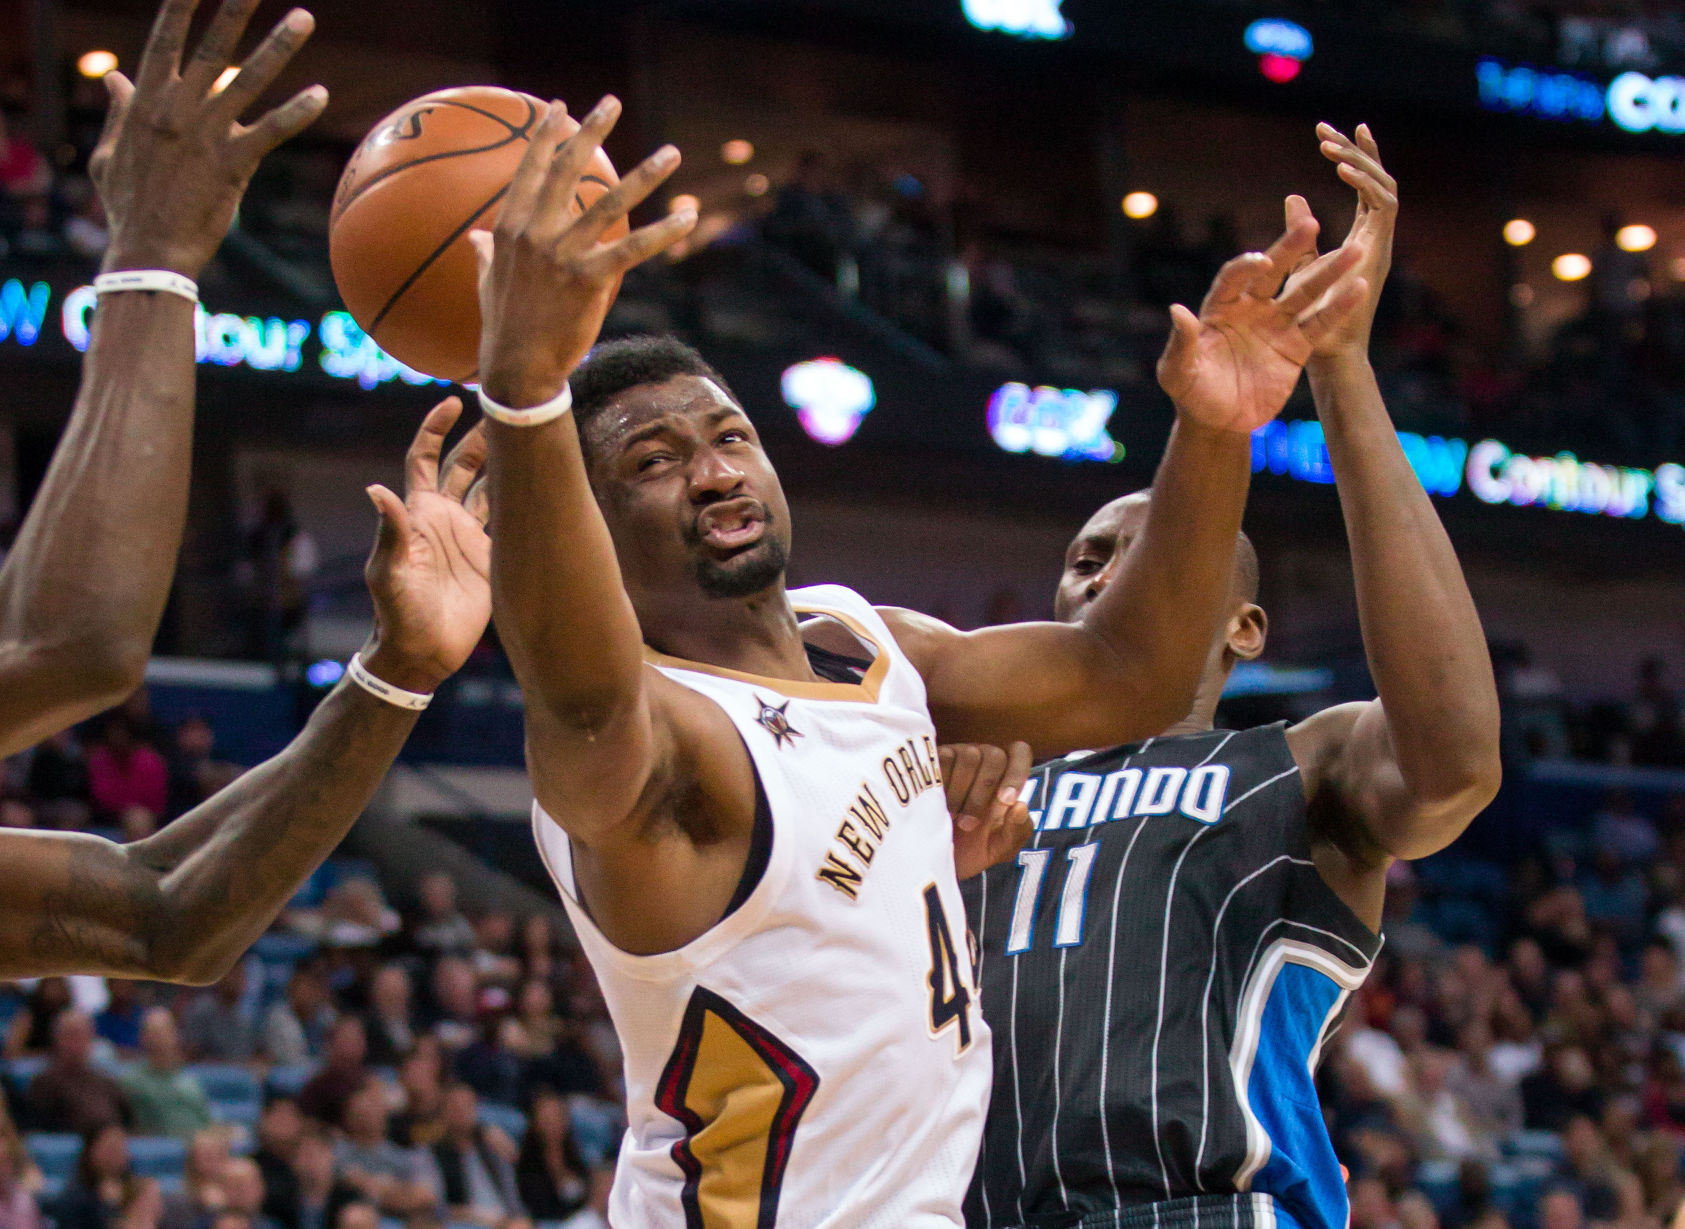 Solomon Hill undergoes surgery to repair torn hamstring